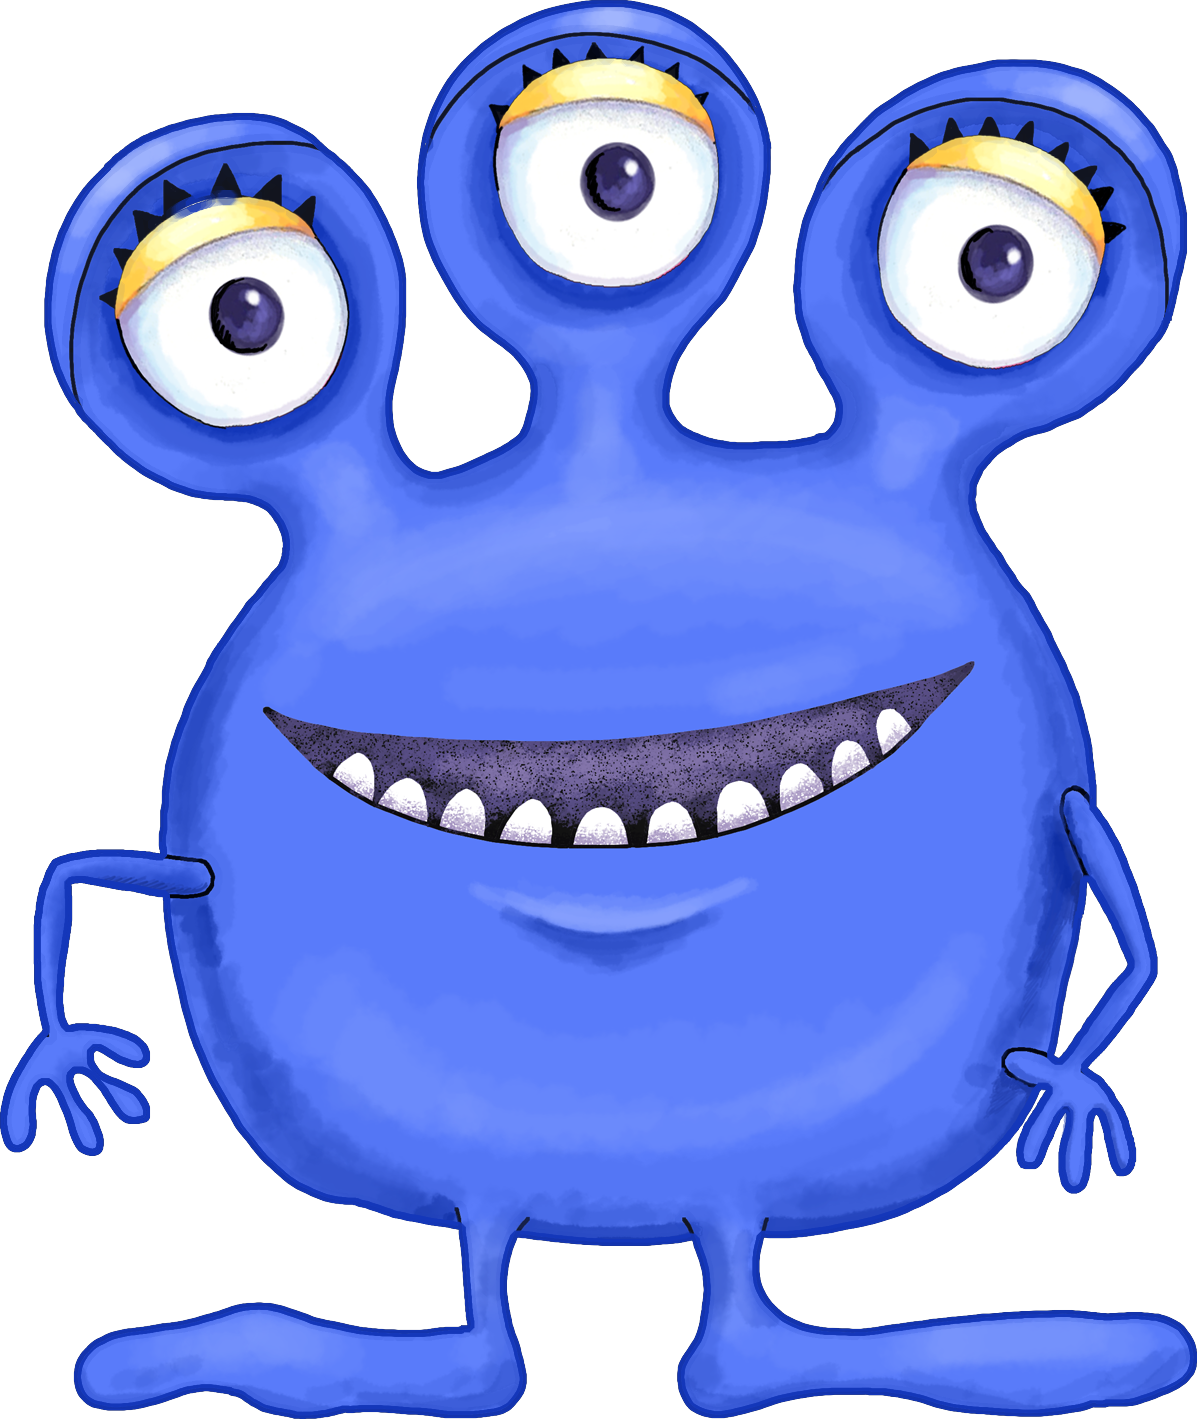 Pet clipart alien. Cute blue purple and